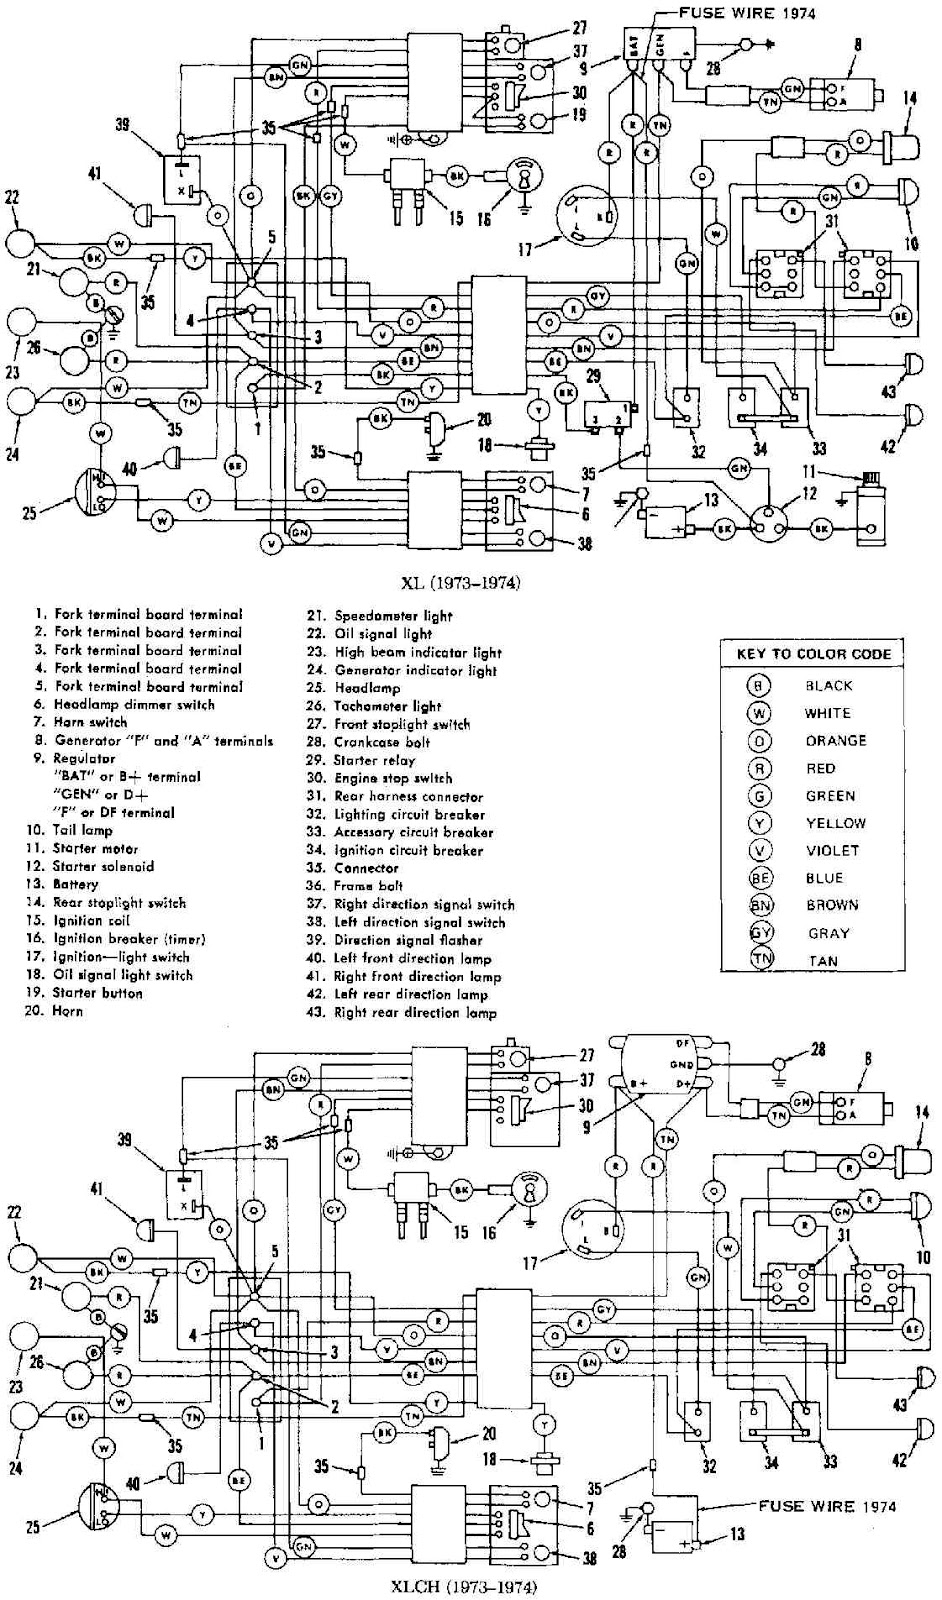 Harley+Davidson+XL XLCH+1973 1974+Motorcycle+Electrical+Wiring+Diagram kawasaki mule kawasaki mule ignition wire ing diagram cant 1991 flhtc wiring diagram at readyjetset.co